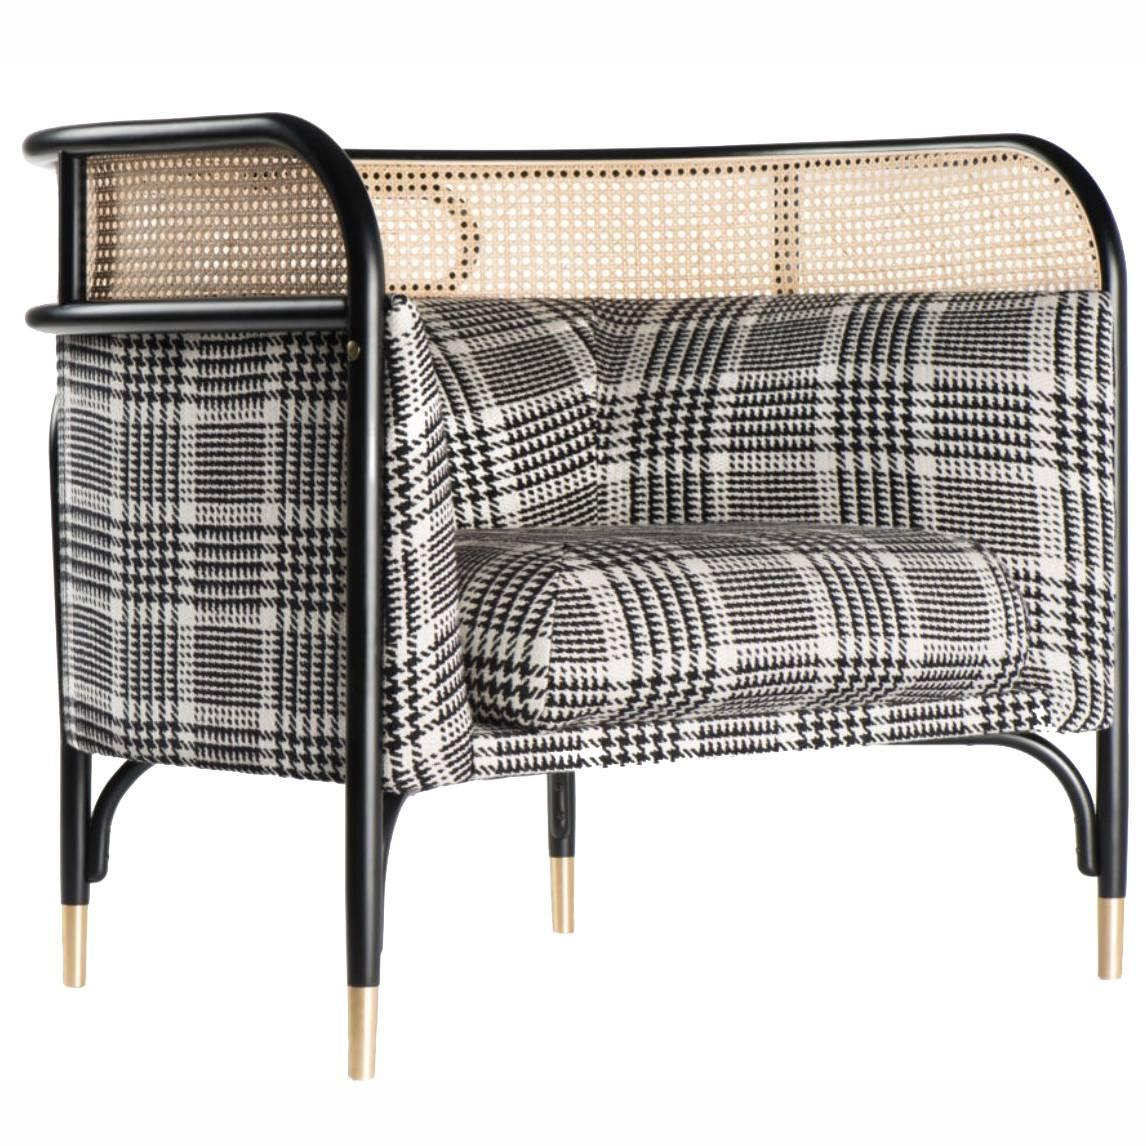 Targa Lounge Chair, Contemporary Lounge Chair with Woven Cane Edge